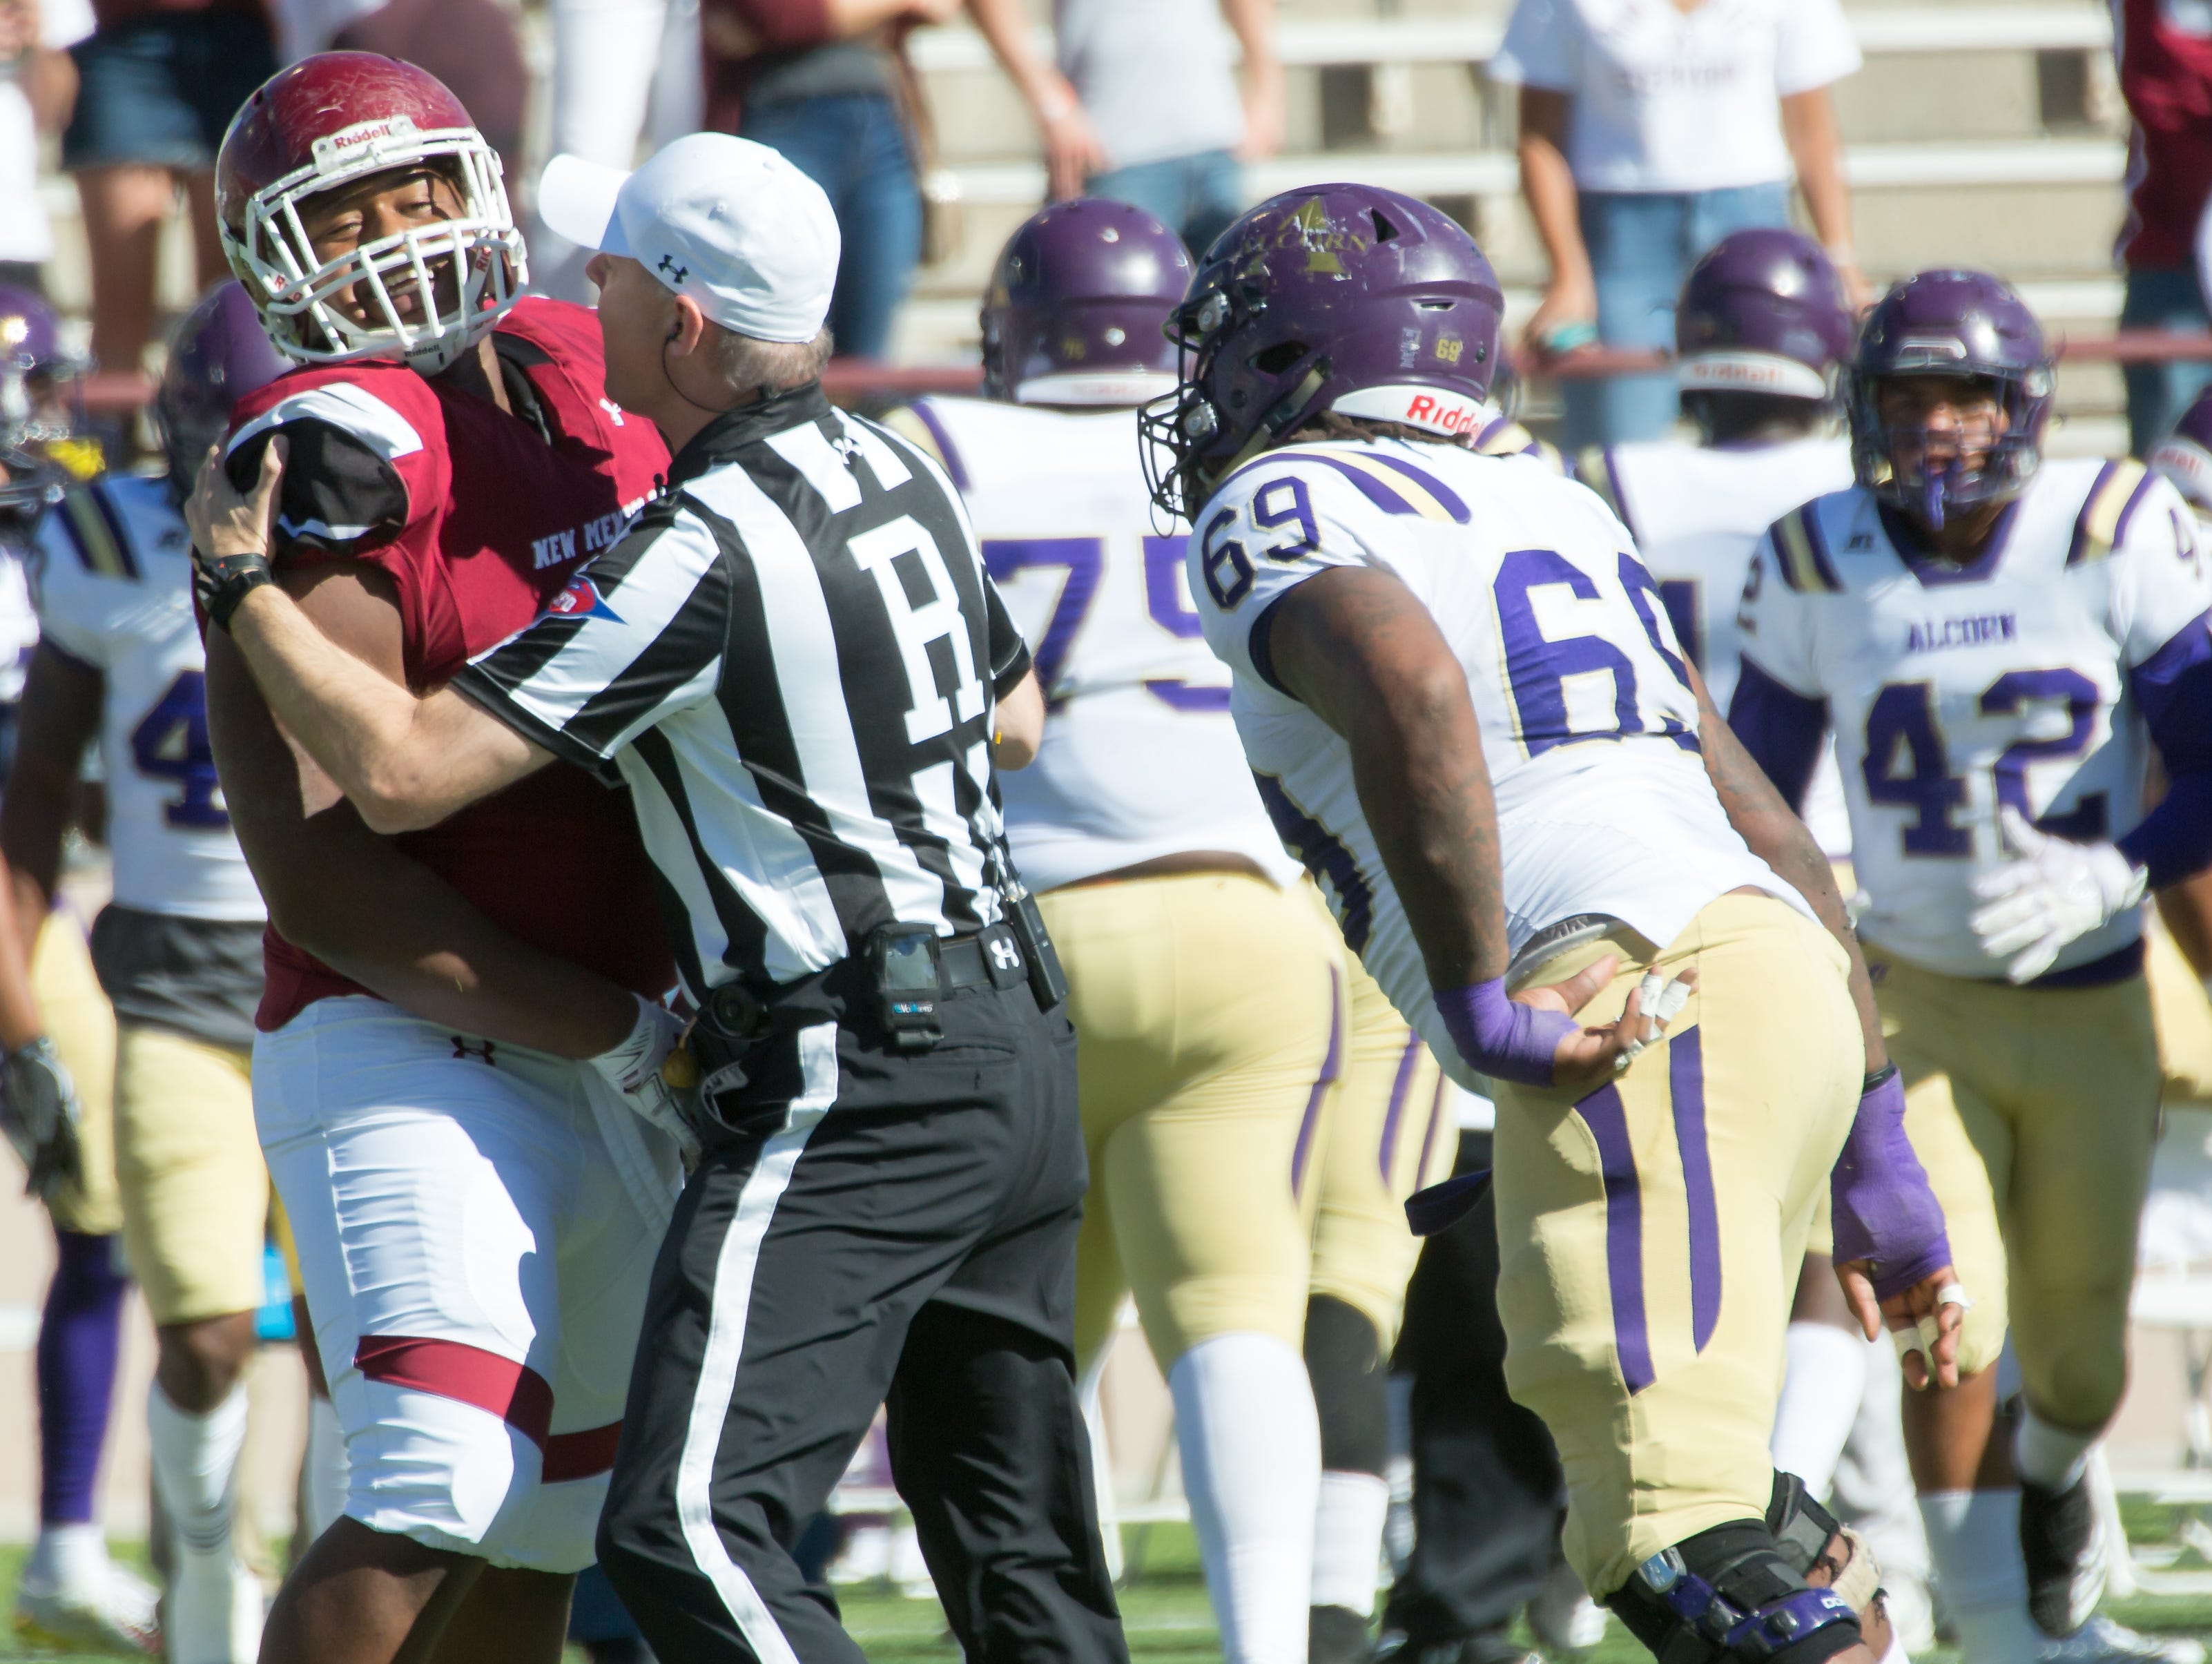 NMSU's Miles Vigne gets a scolding from a referee as Alcorn State player Deonte Brooks looks for more on Saturday, Nov. 3, 2018 at Aggie Memorial Stadium.